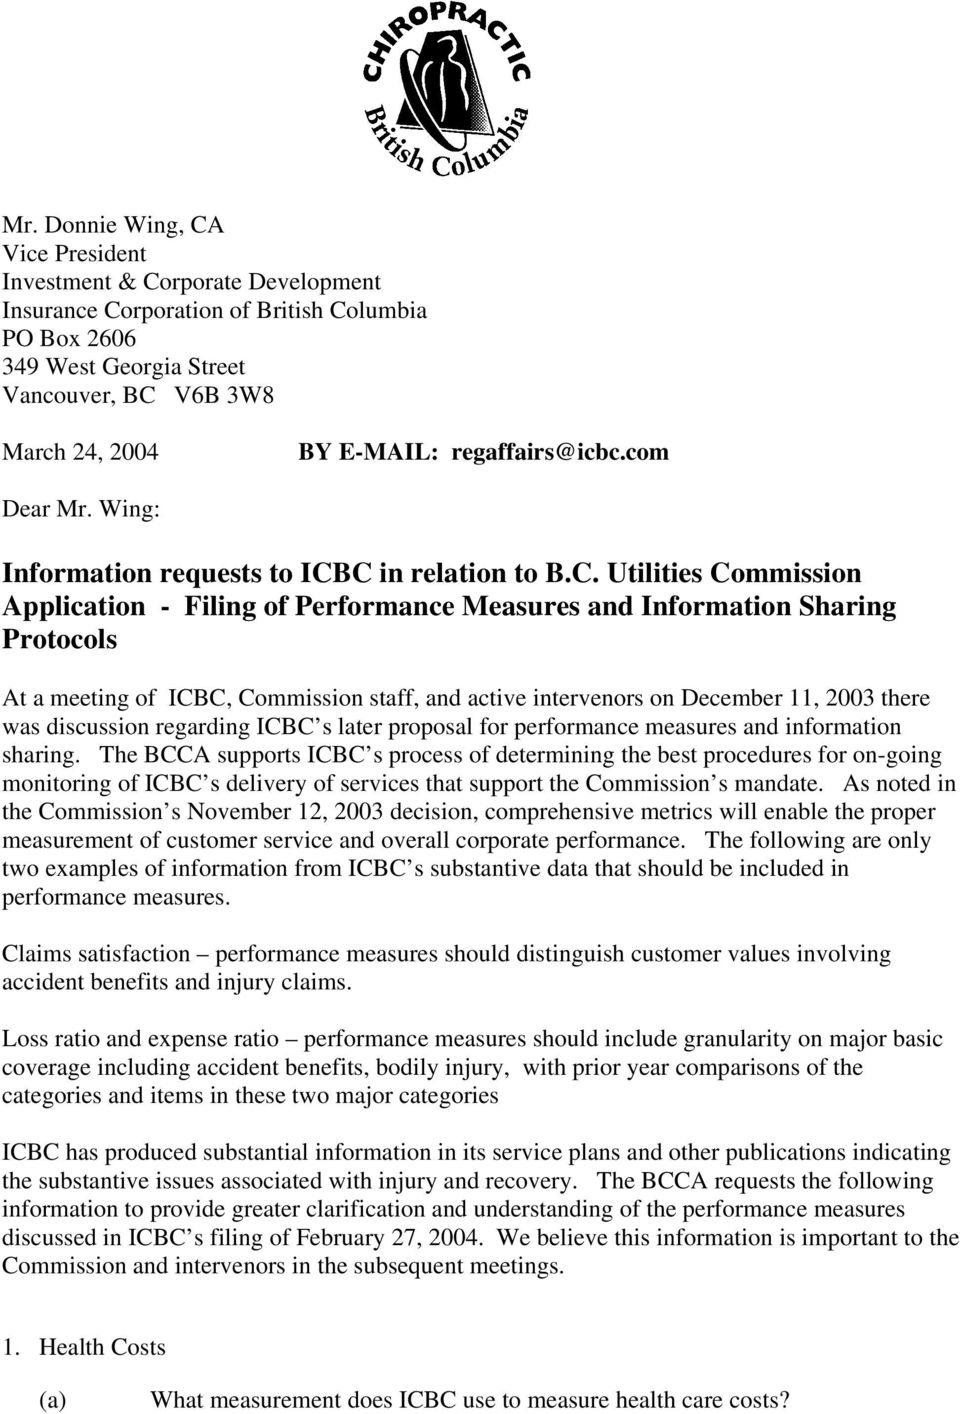 C in relation to B.C. Utilities Commission Application - Filing of Performance Measures and Information Sharing Protocols At a meeting of ICBC, Commission staff, and active intervenors on December